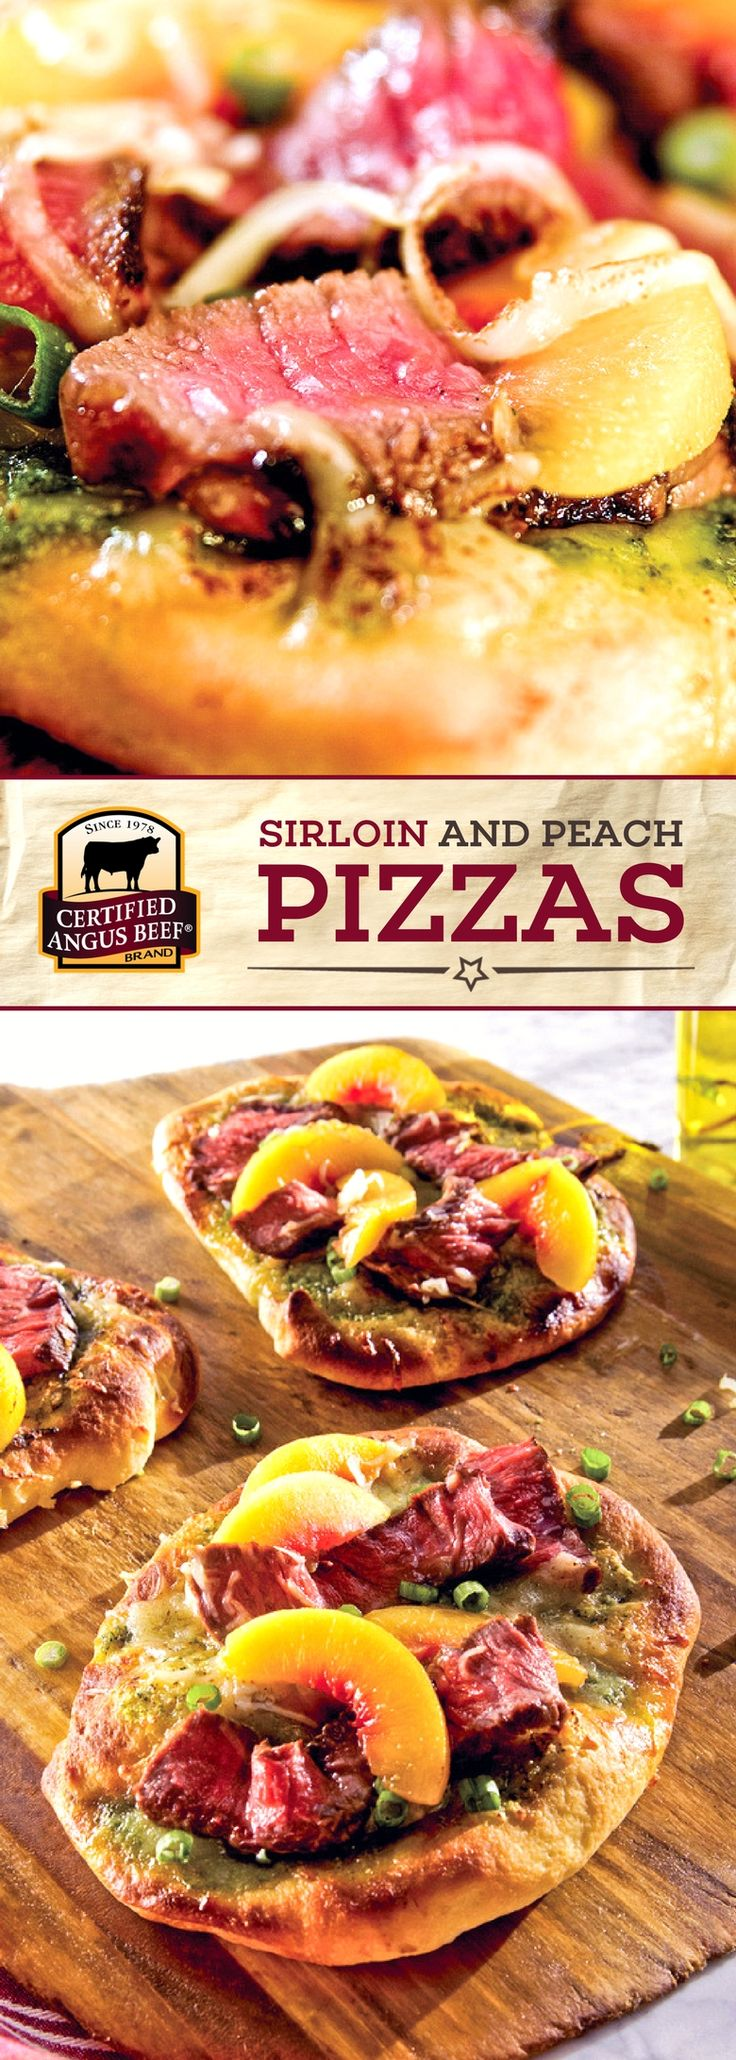 Certified Angus Beef®️ brand Sirloin and Peach Pizzas are made with the BEST sirloin steak, and a delicious pesto that combines basil, oregano, shallots, and other BOLD spices! The sweetness of the peaches brings out the deep flavors of the steak in this tasty dinner recipe. #bestangusbeef #certifiedangusbeef #beefrecipe #dinnertime #steakrecipe #pizza